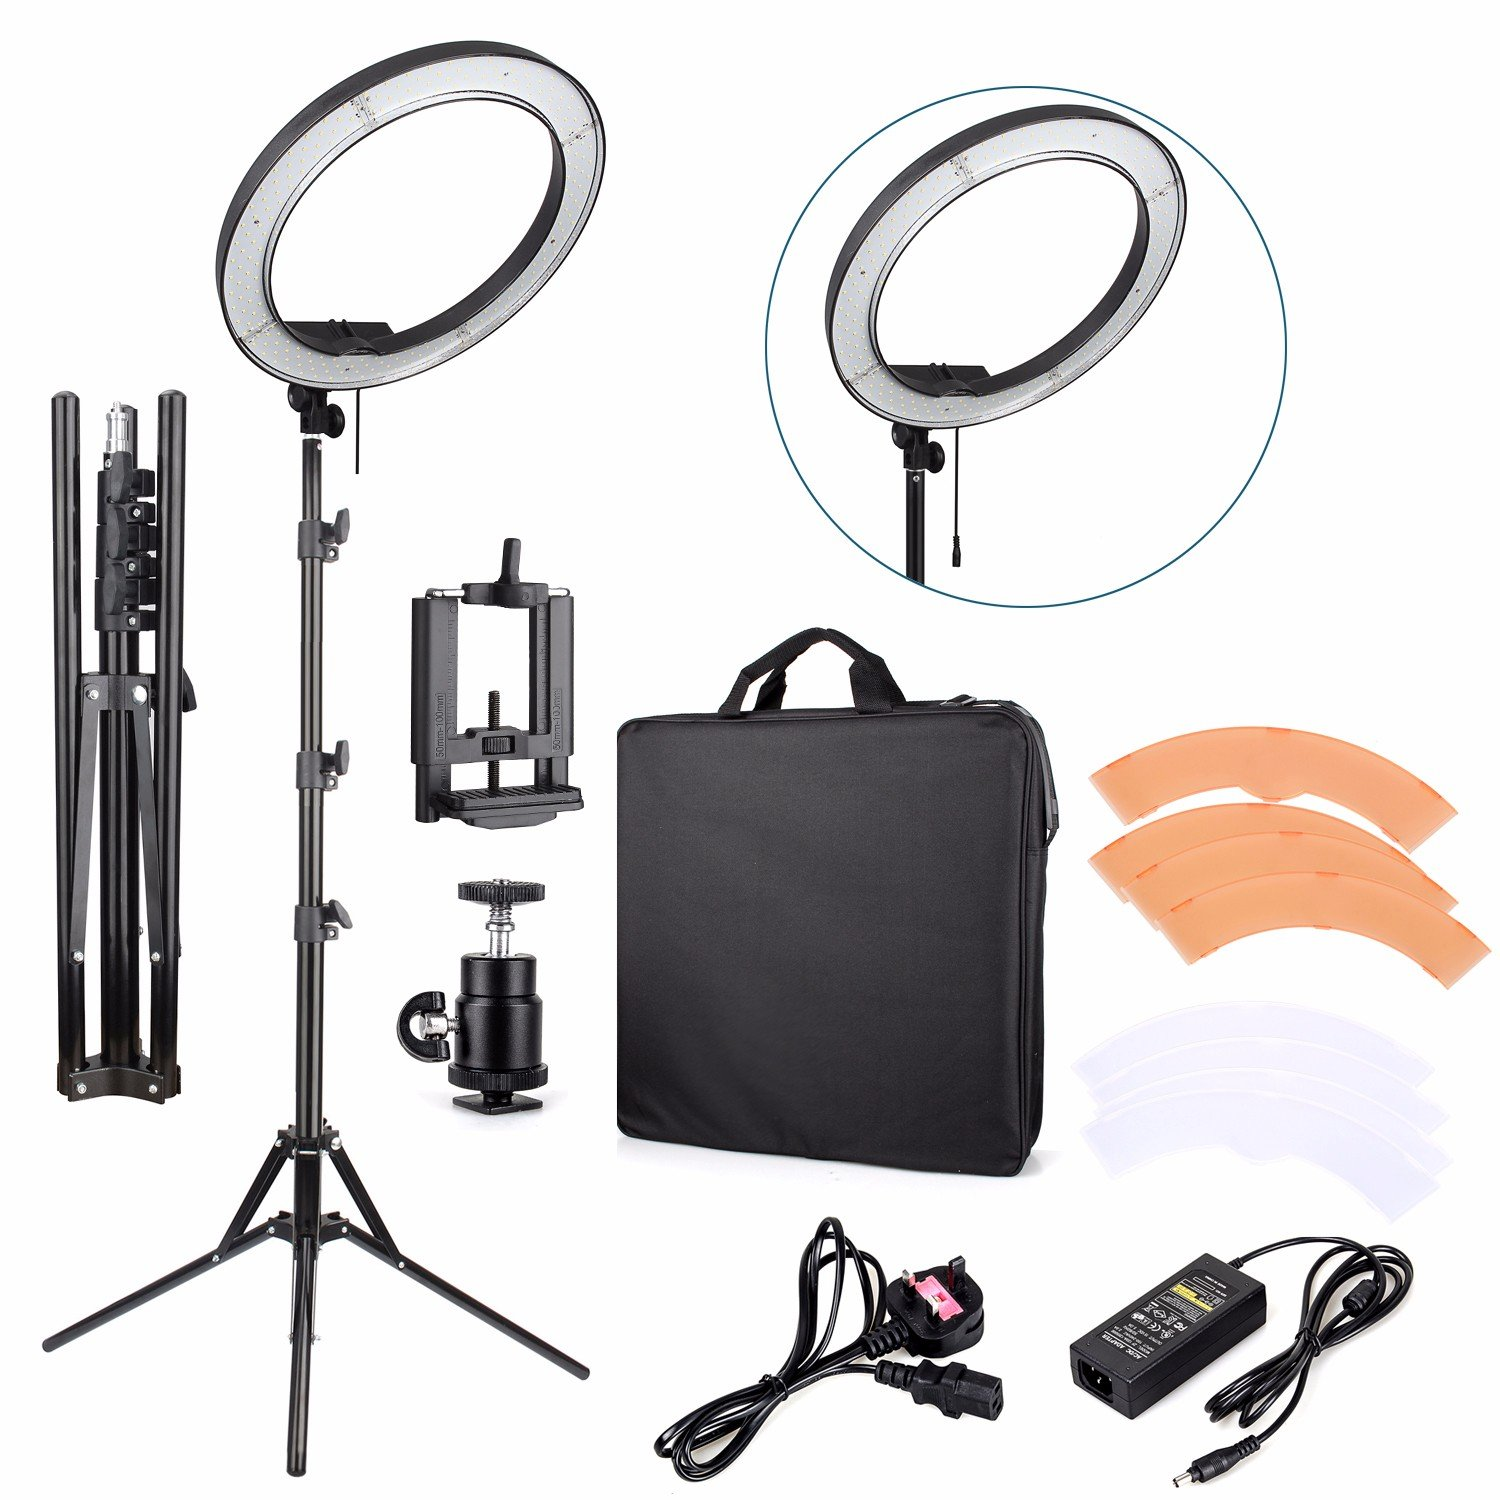 EACHSHOT ES240 Kit CRI 95+ {Including Light, Stand, Phone Clamp, Tripod Head }240 LED 18'' Stepless Adjustable Ring Light Camera Photo/Video Portrait Photography 5500K Dimmable (Light Stand Included) by EACHSHOT